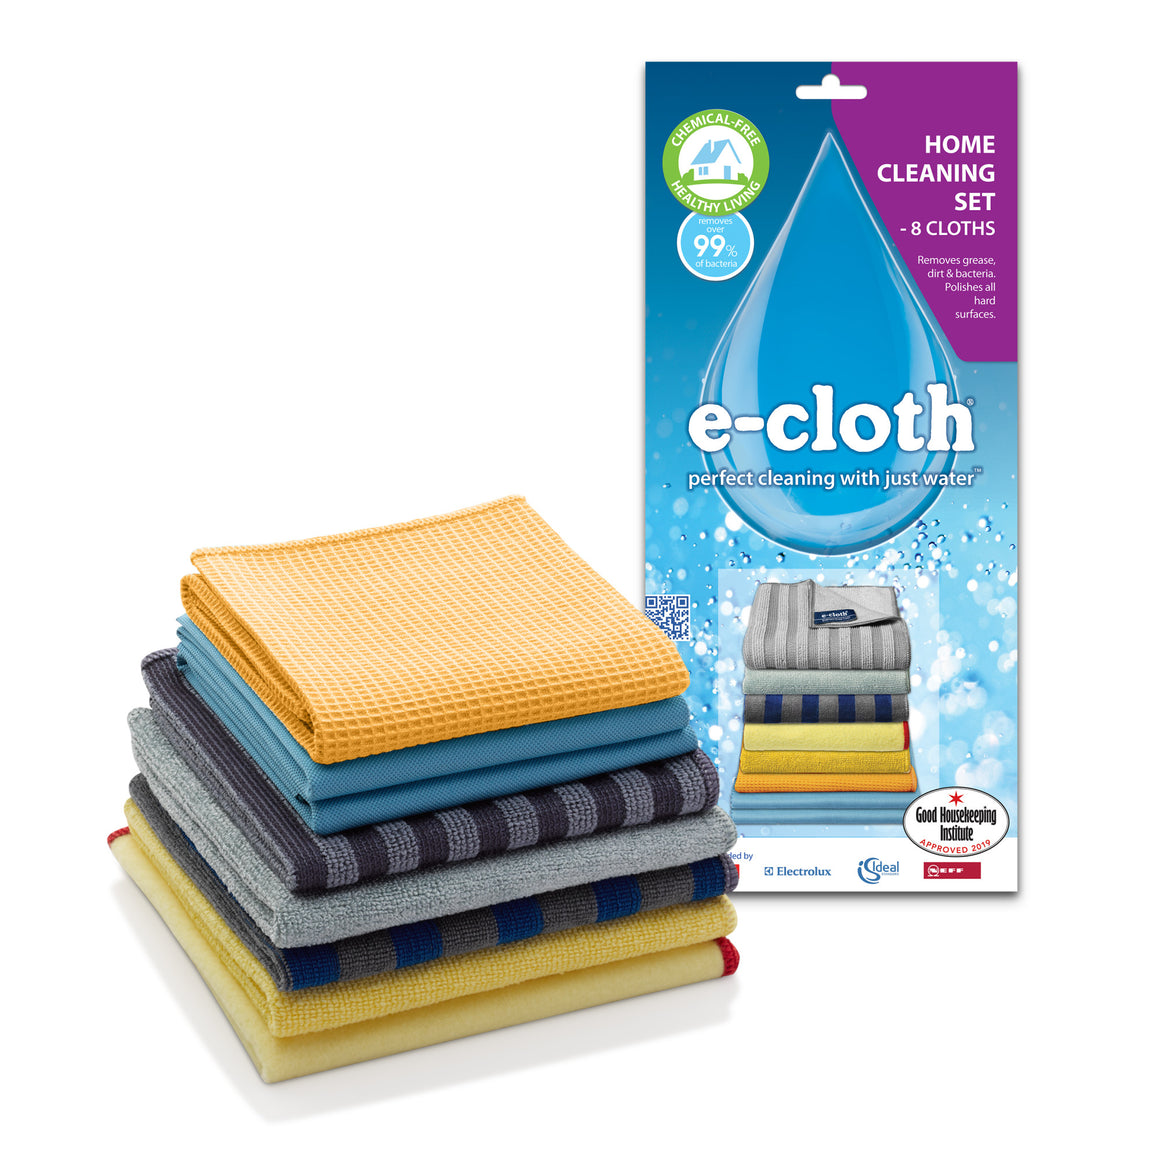 8 Cloth Home Cleaning Set